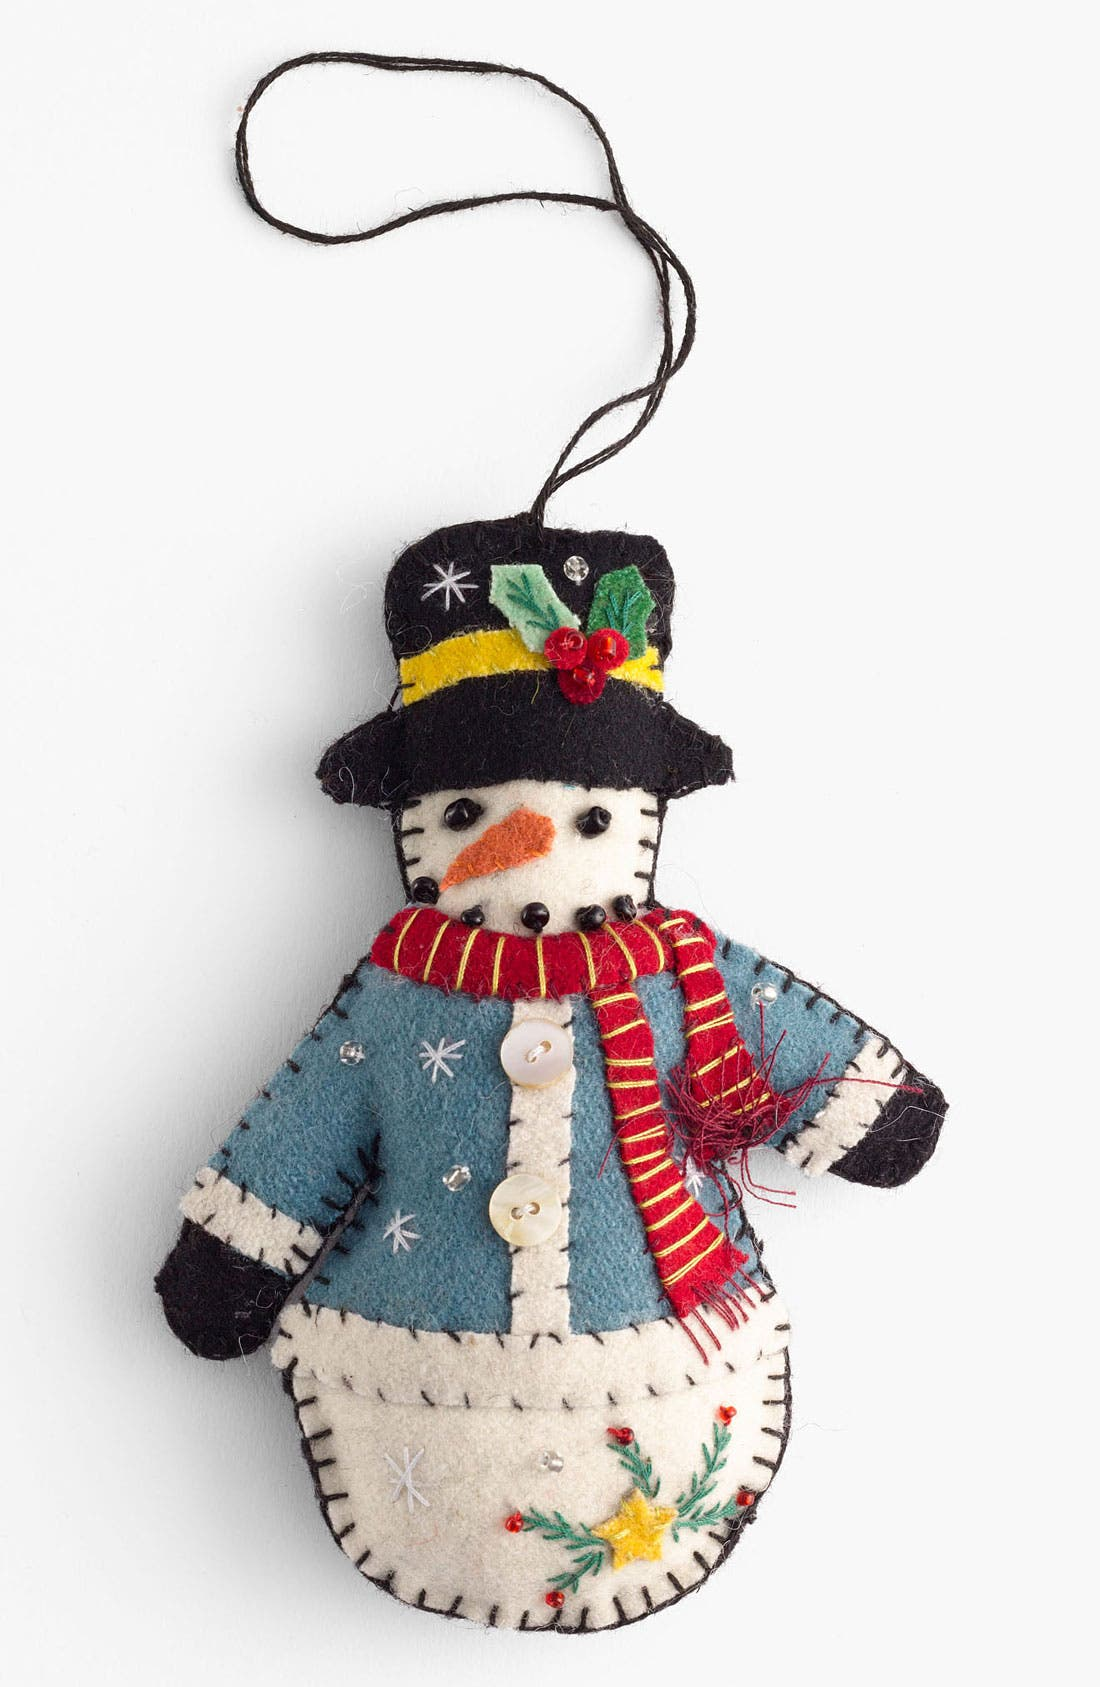 Alternate Image 1 Selected - New World Arts 'Puffy Snowman with Blue Coat' Ornament